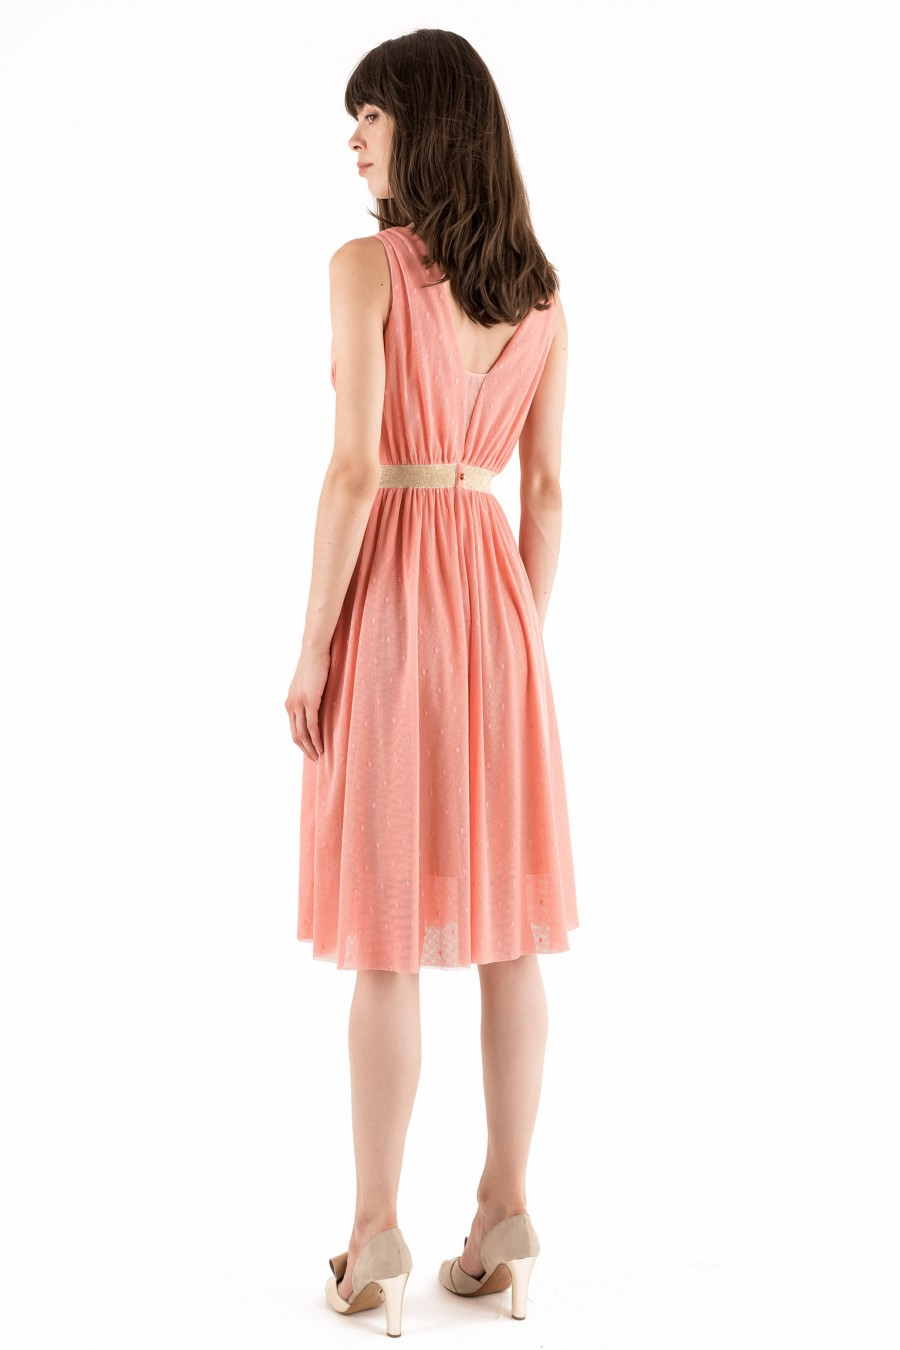 Bridesmaid pink tulle dress